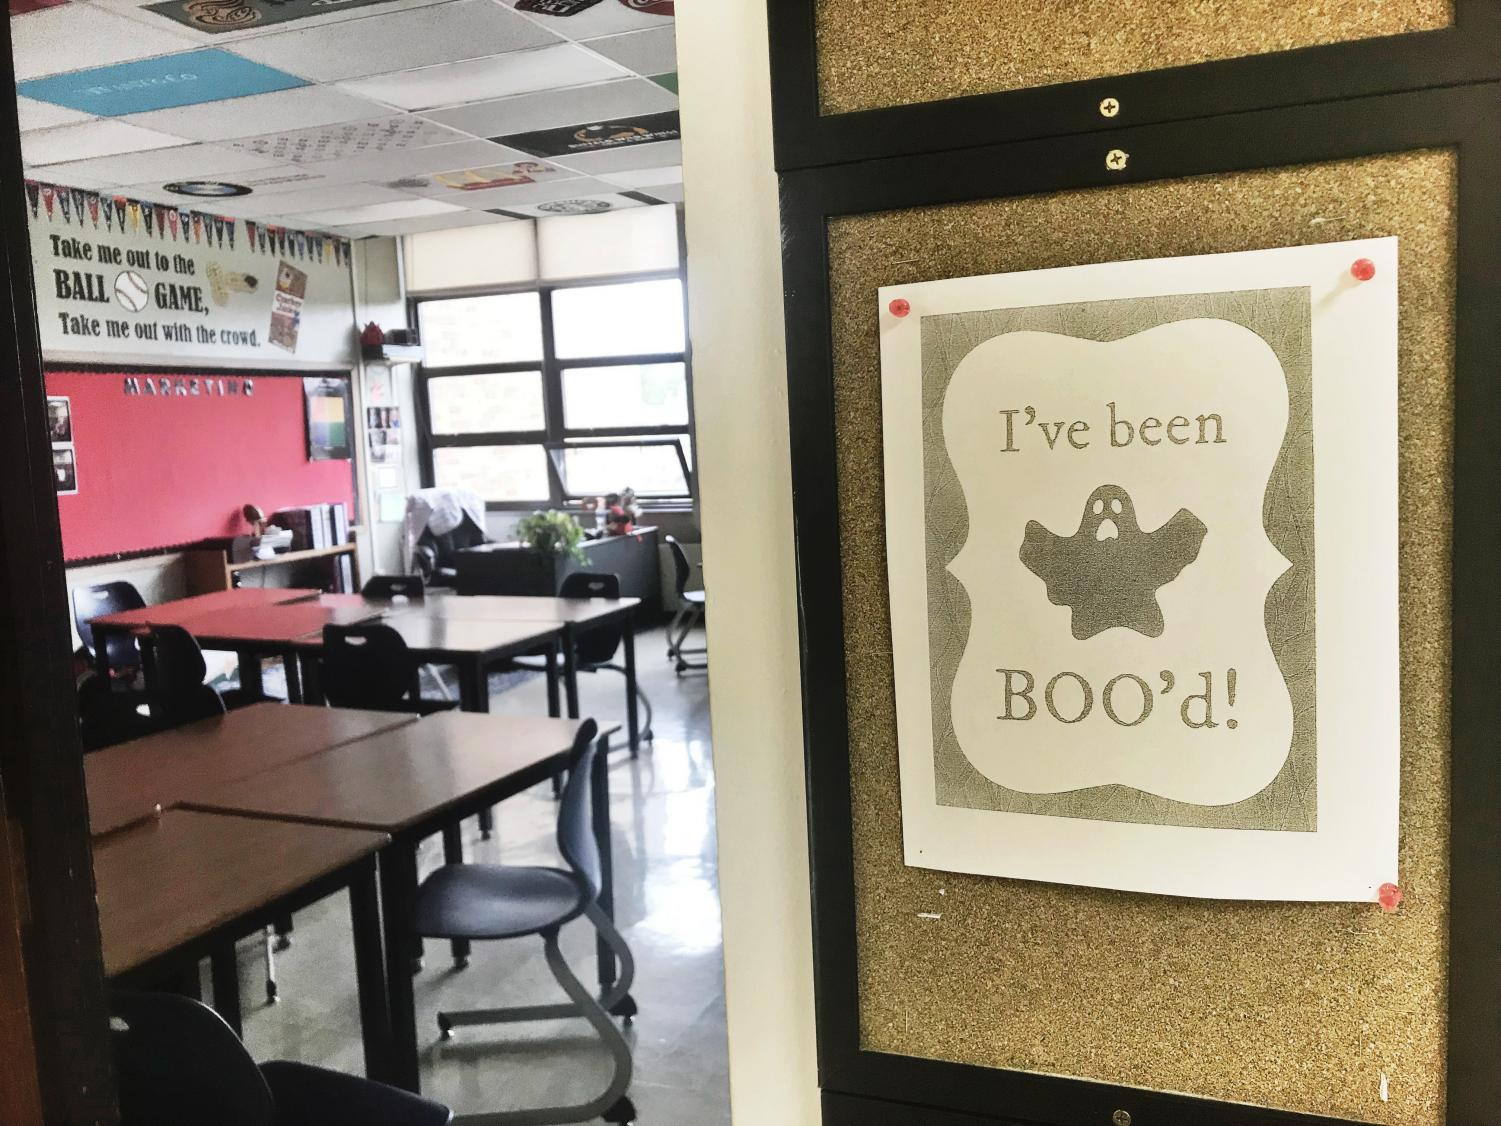 Throughout the entire school, boo'd signs have been left on teachers doors and desks to indicate that they've been boo'd. A large number of boo'd signs have been seen in the school, indicating that many teachers are participating in this Halloween game.